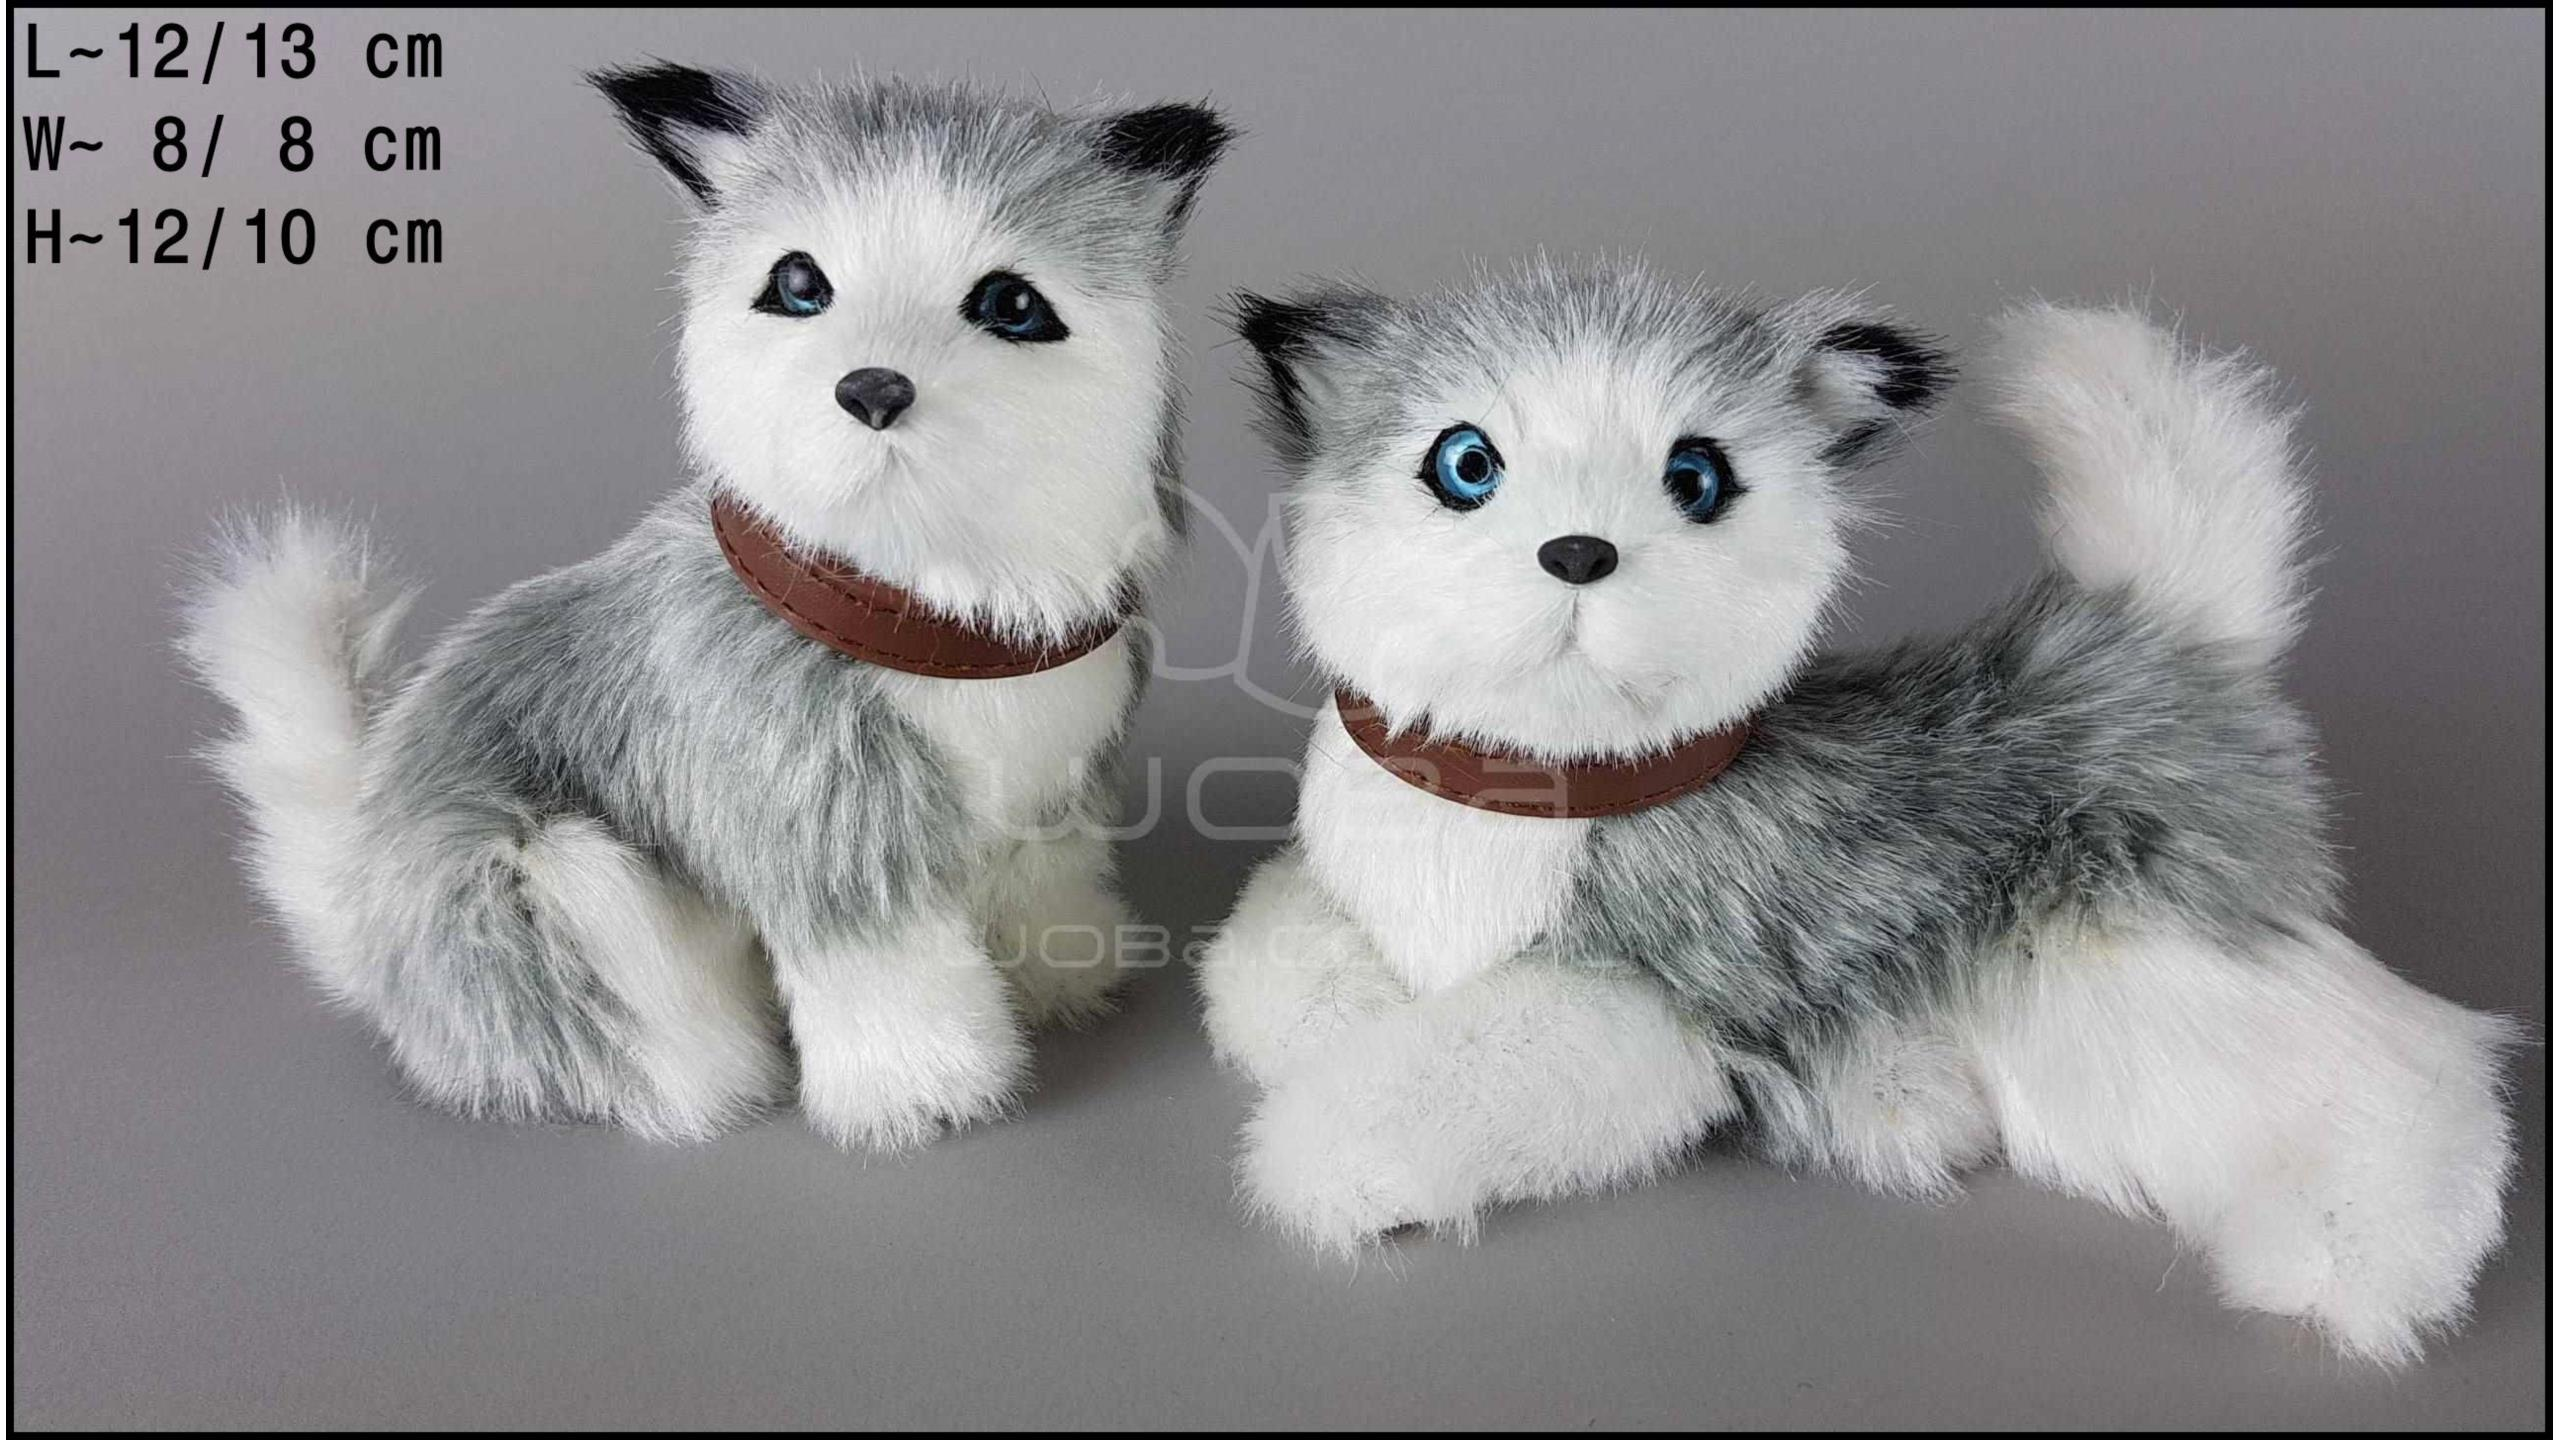 Husky barking (2 pcs in a box)